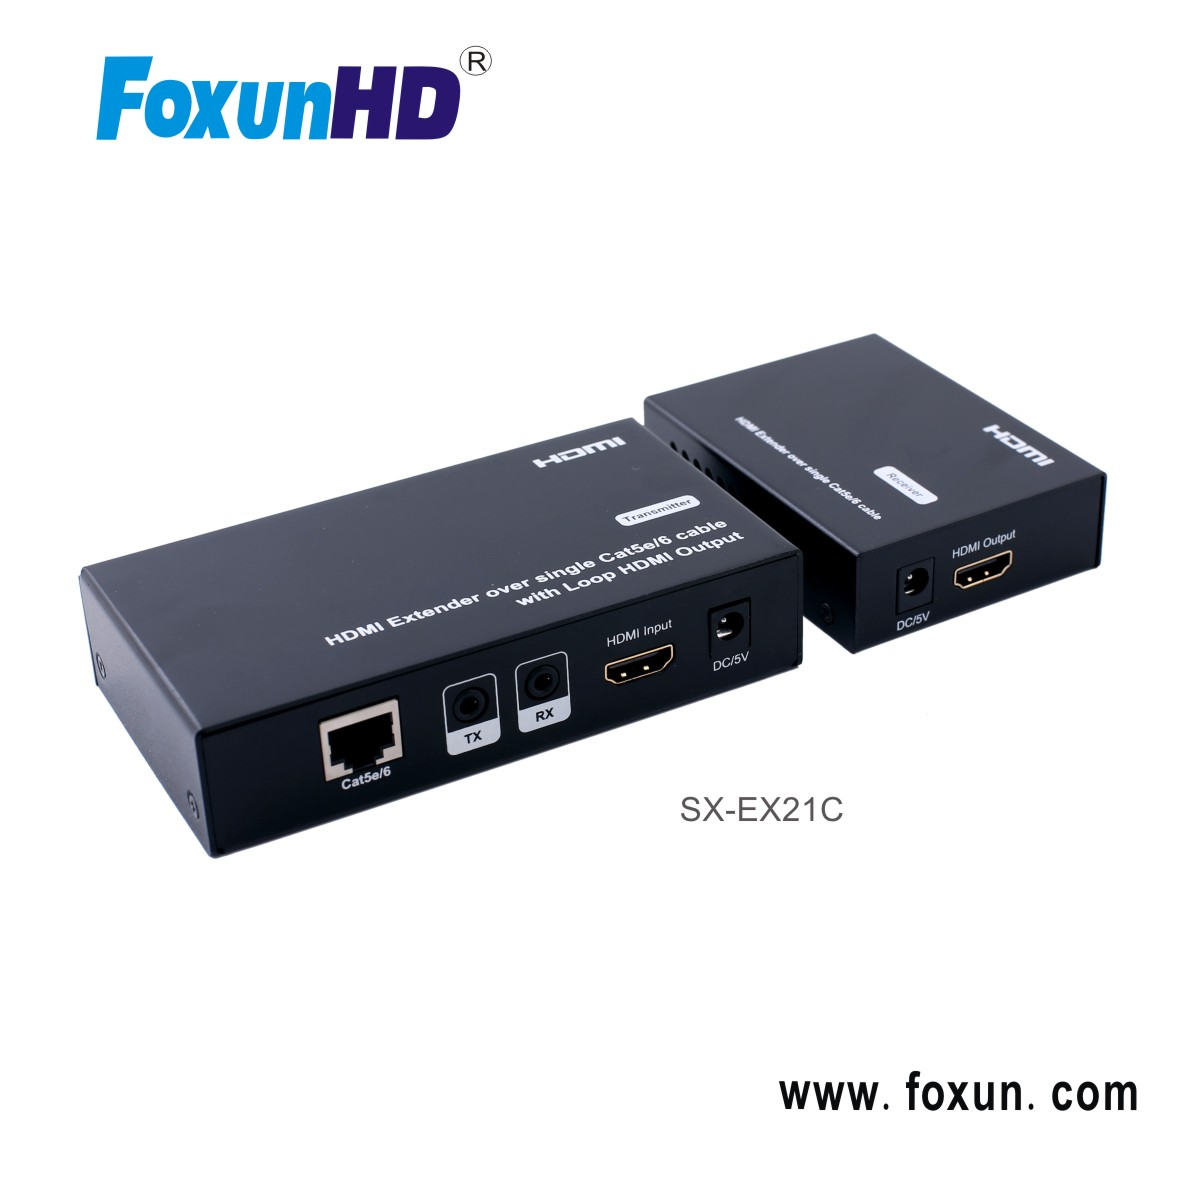 Looping HDMI Output in transmitter 50m Extender over single Cat5e/6